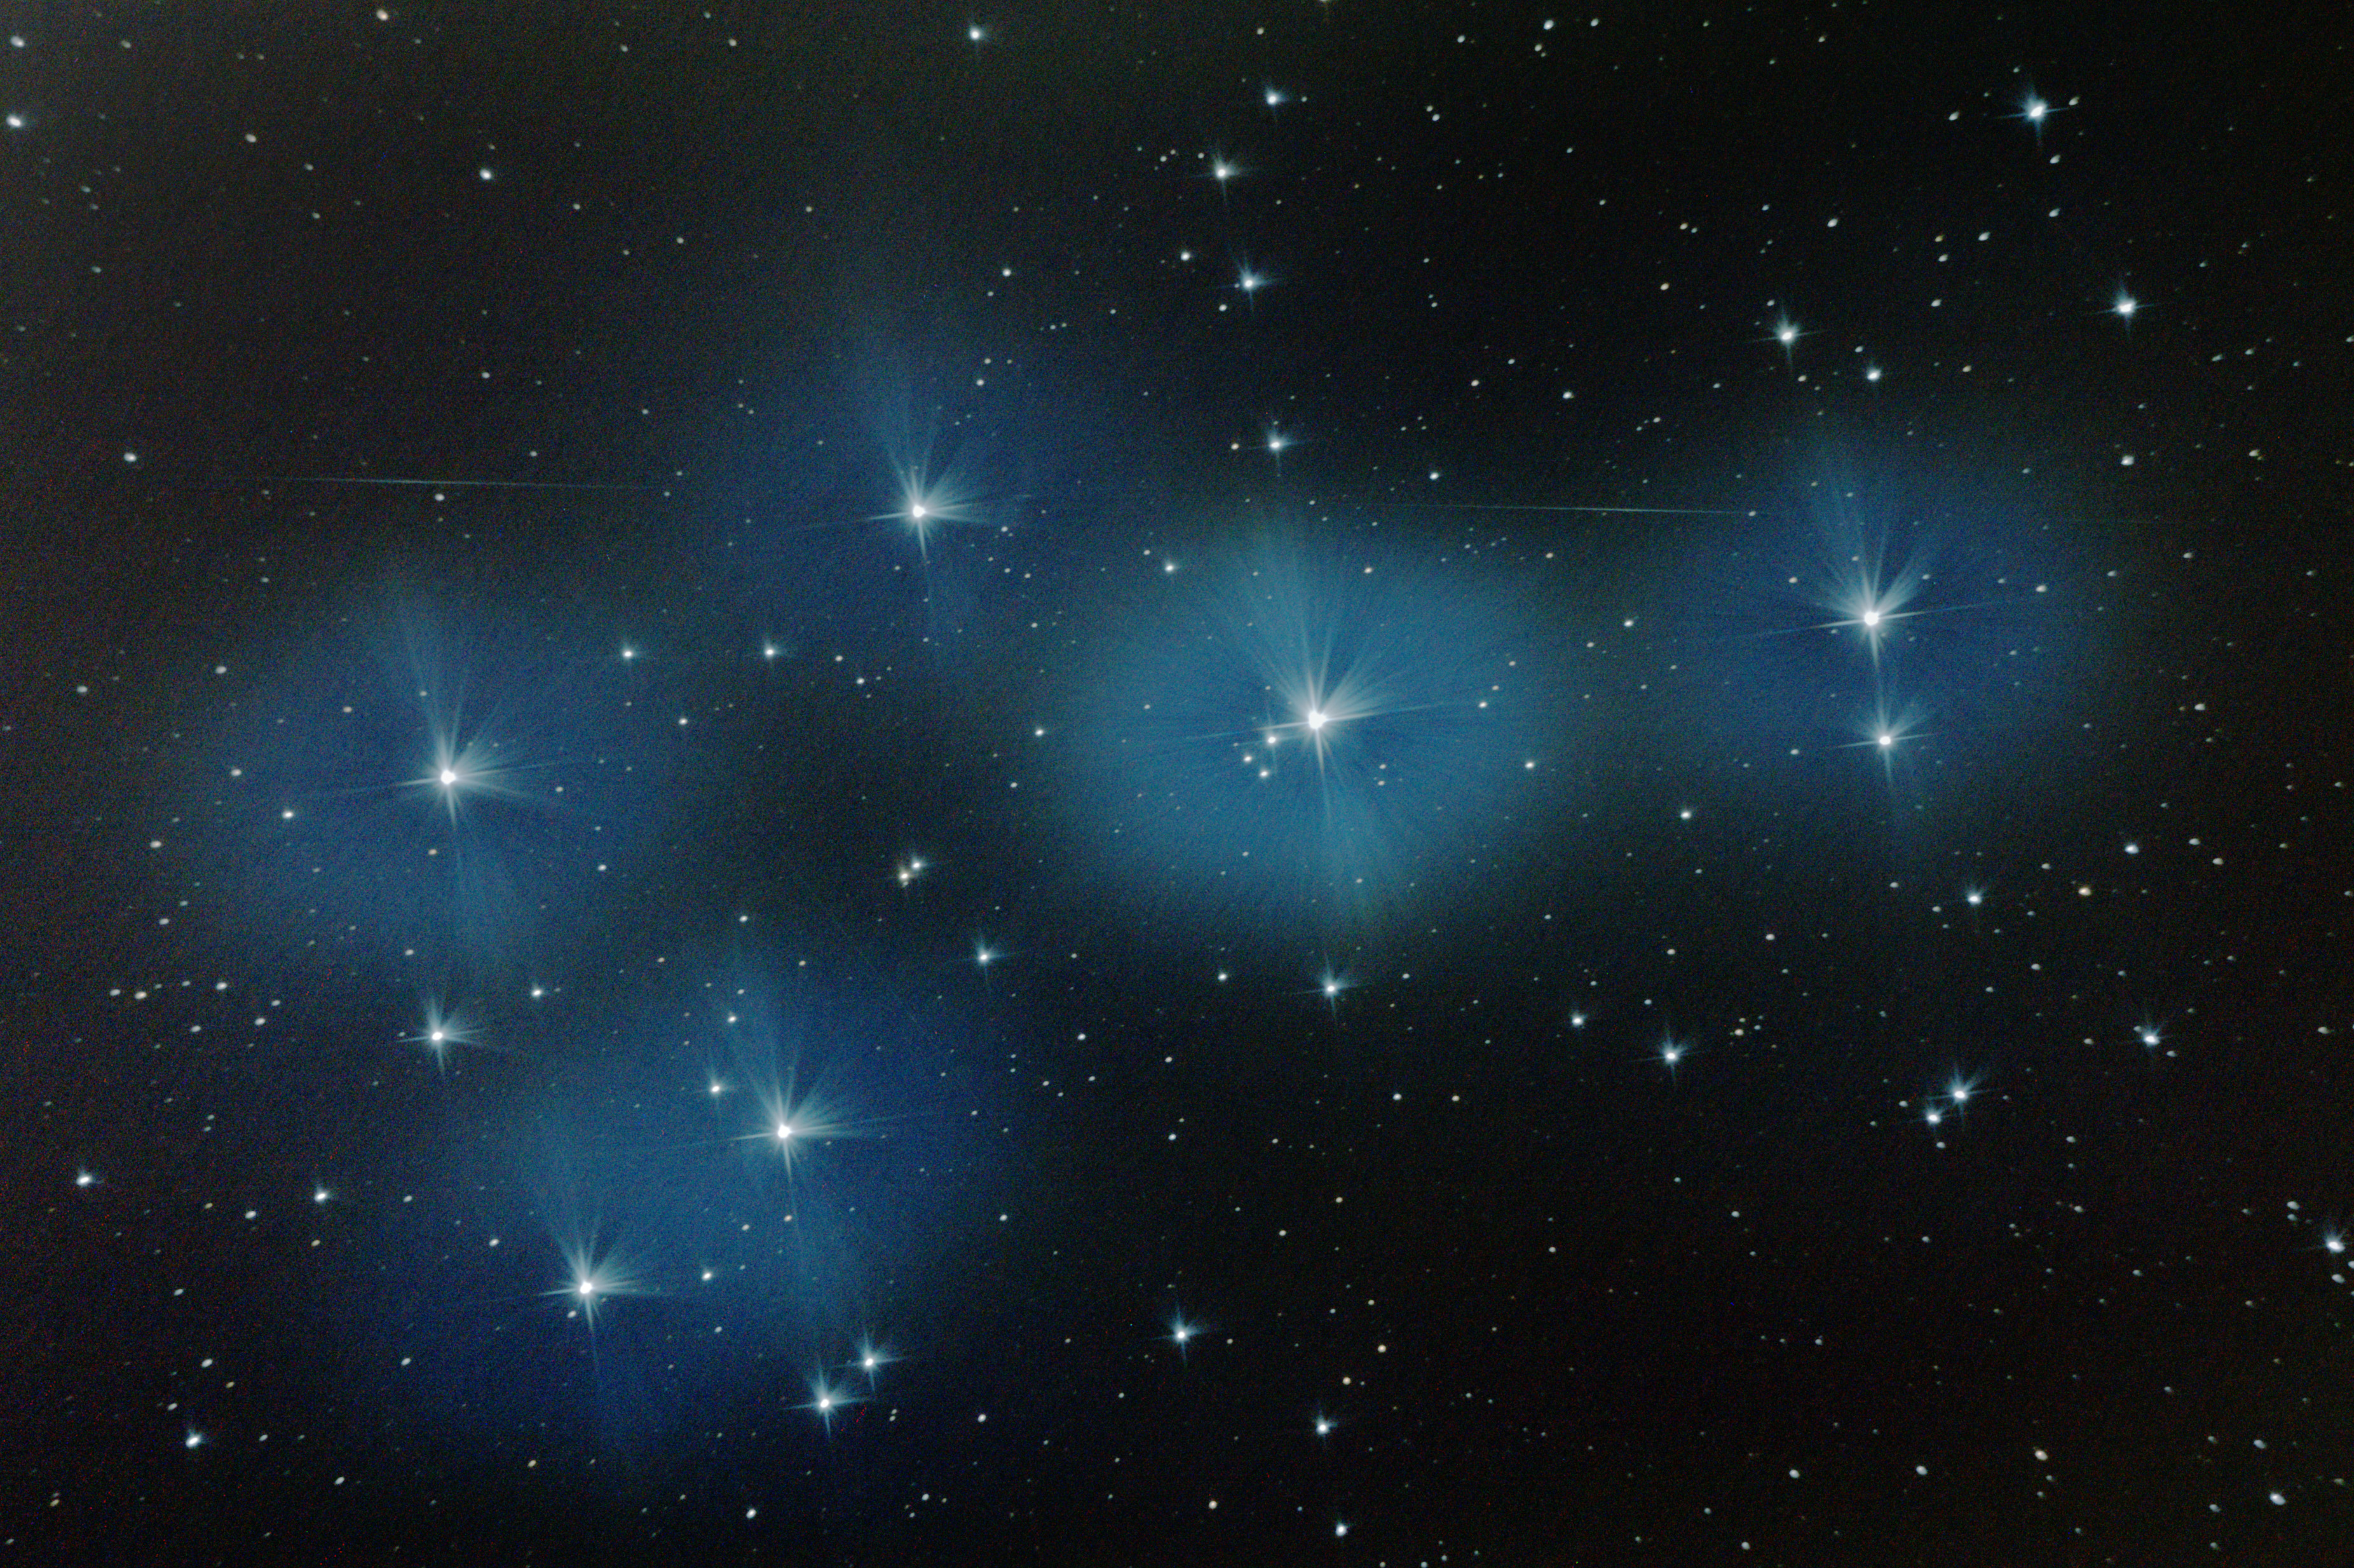 Cassiopeia Observatory - Report - Imaging: M44, M45 and